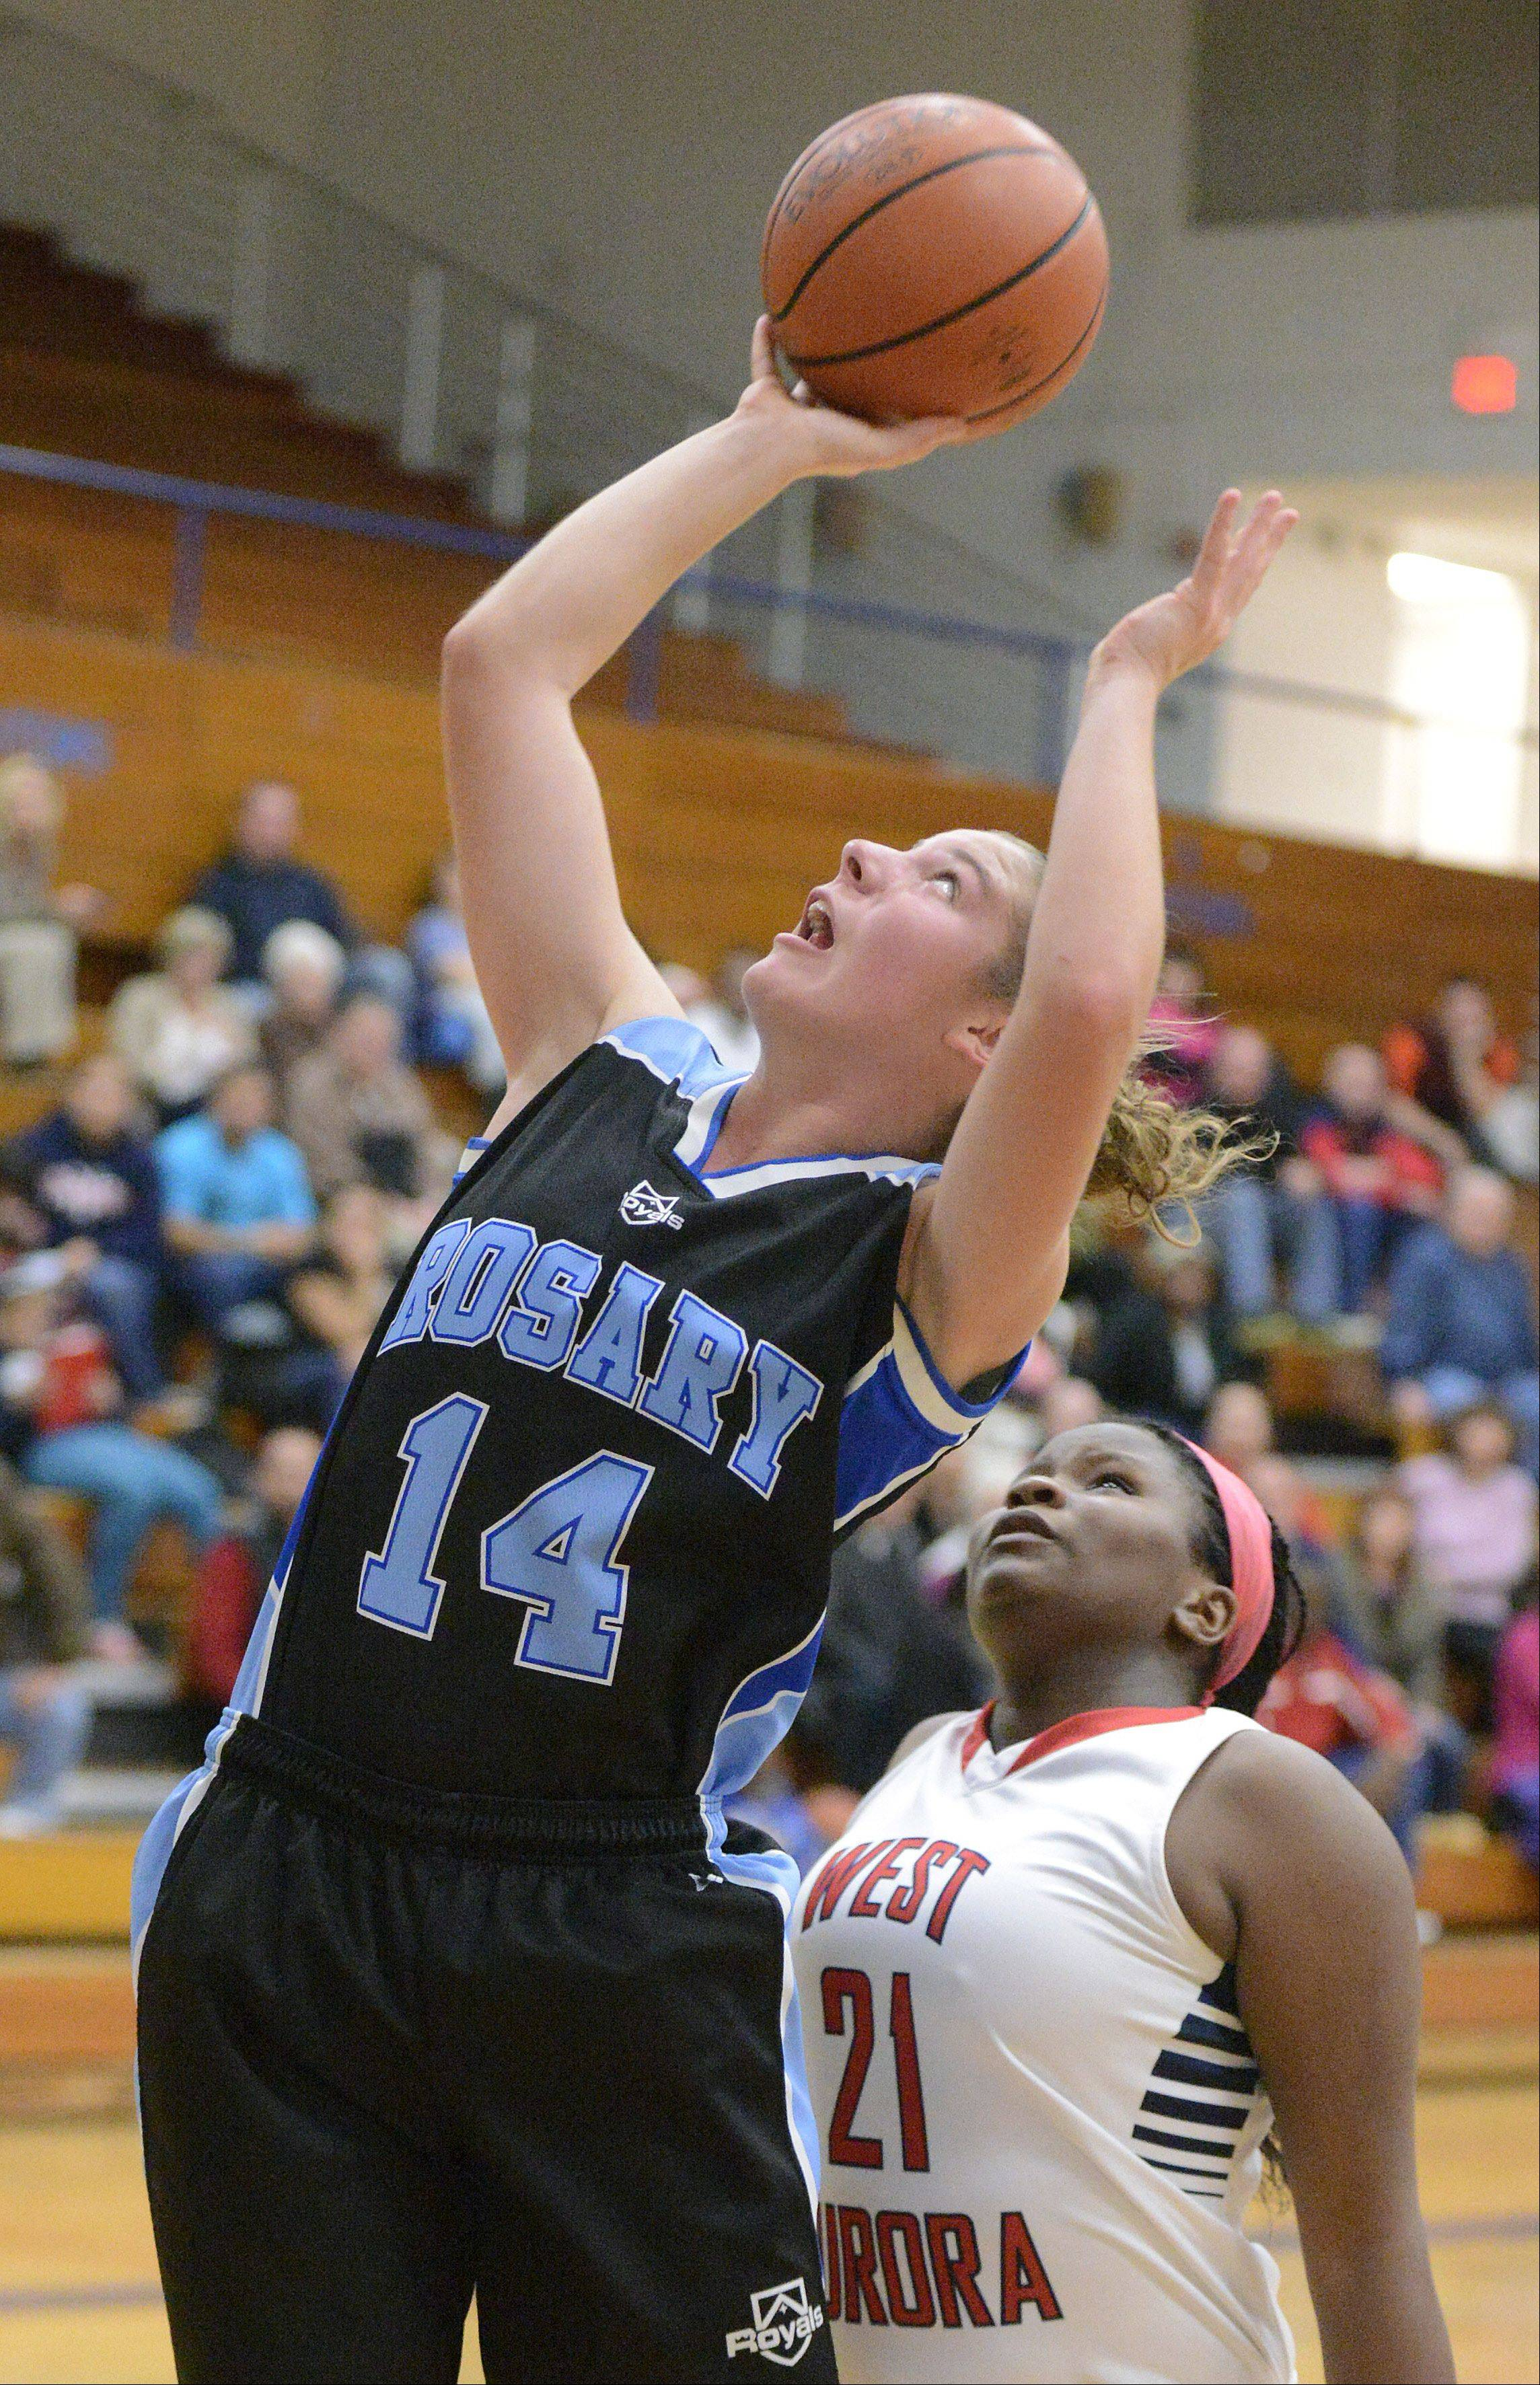 Rosary's Megan Conlin shoots for the hoop under West Aurora's Elizabeth Skaggs.